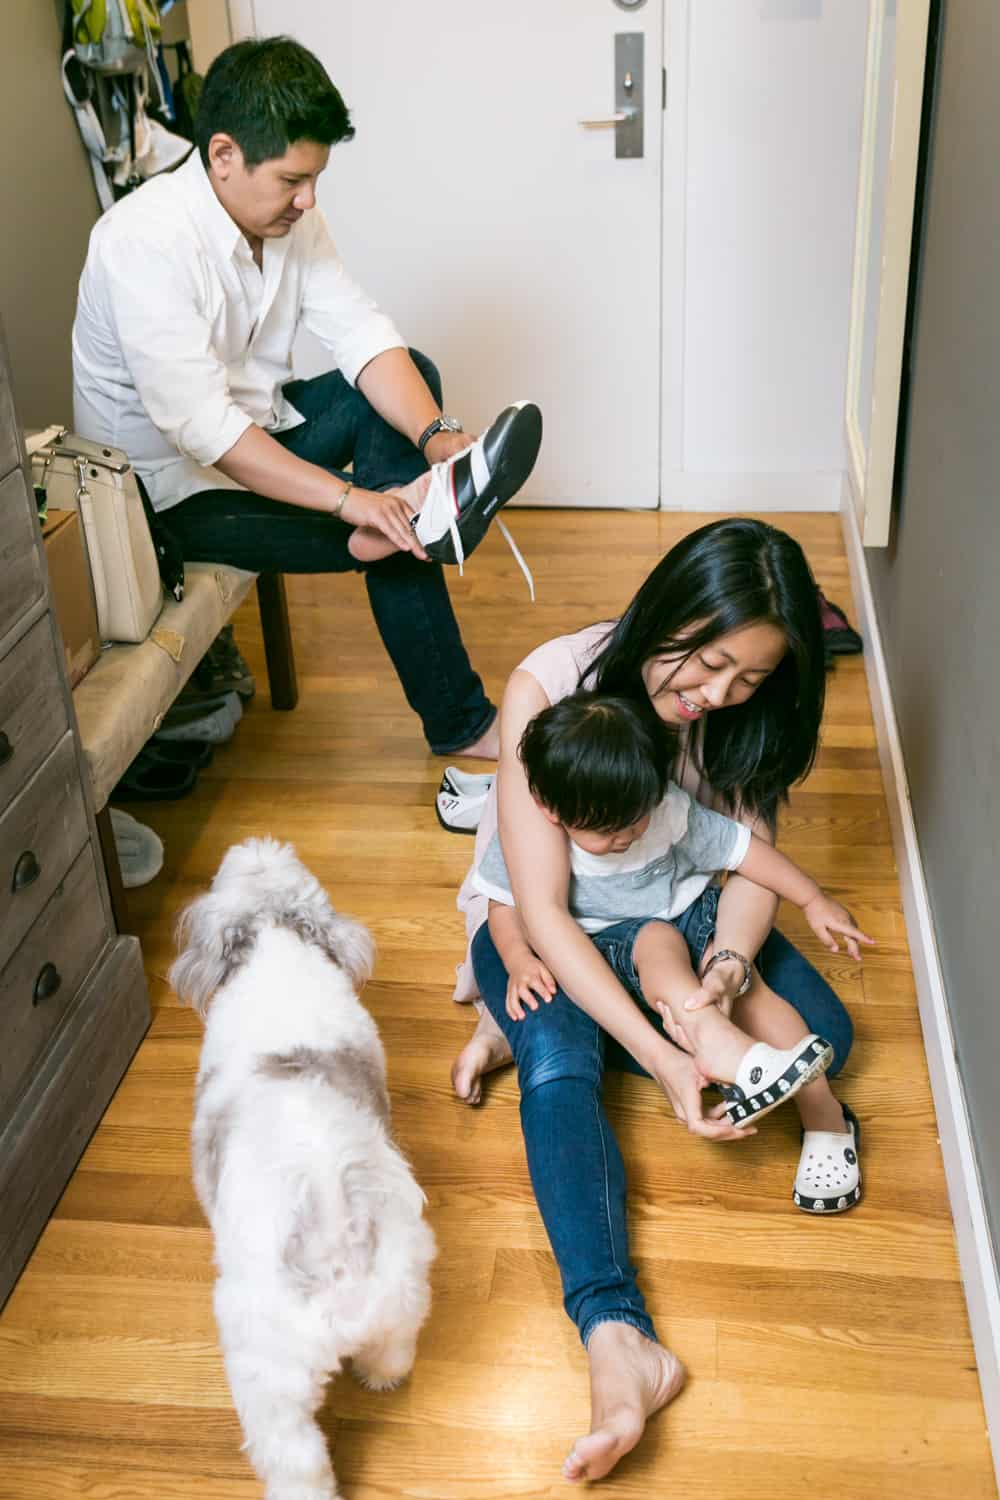 Asian American family putting on shoes in hallway